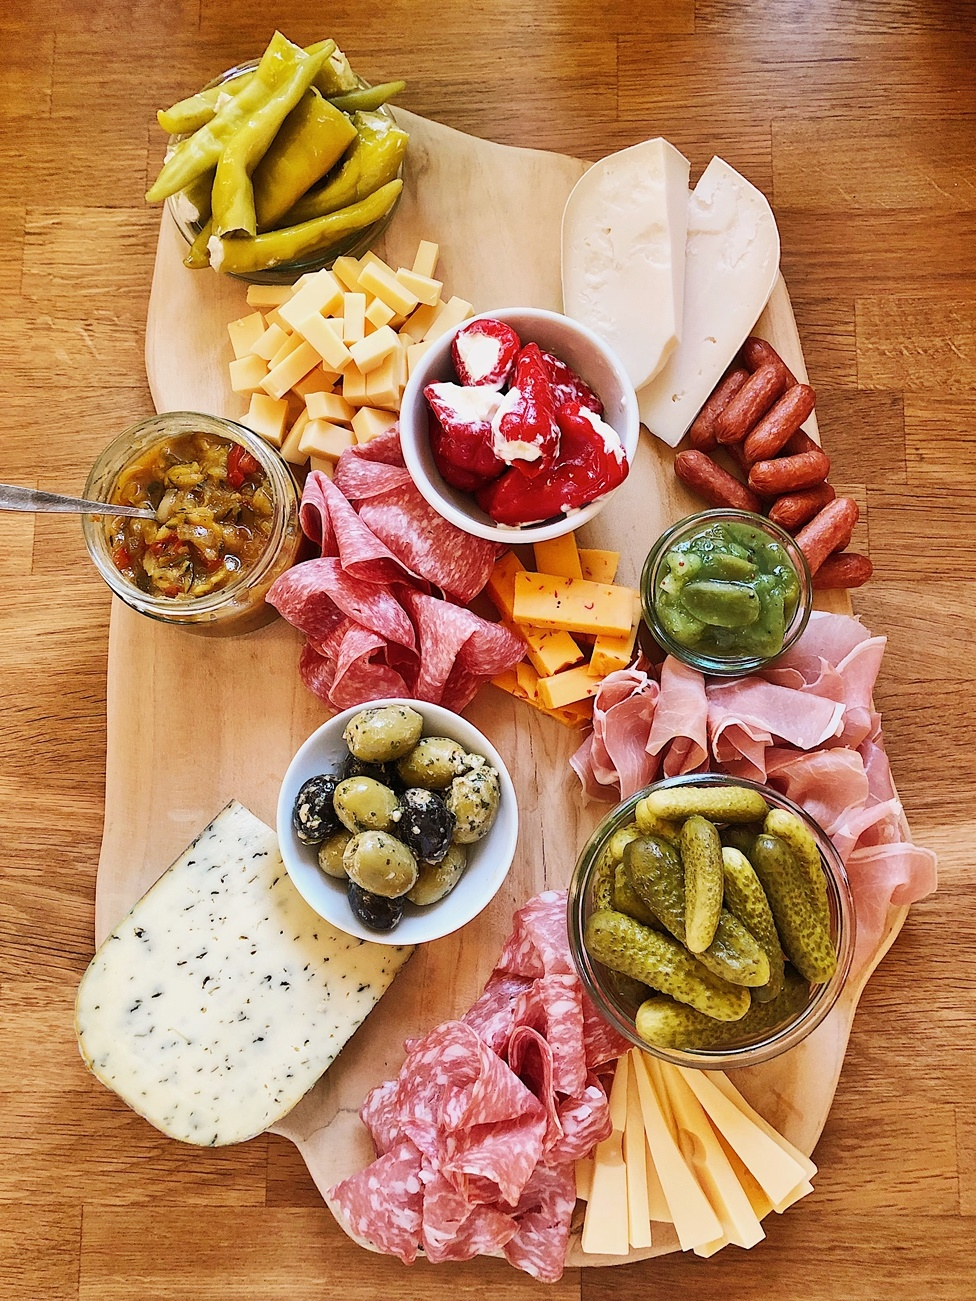 Charcuterie-Board-klassisches-Brotzeitbrettl-Cheese-Board-Snack-Plate-Brotzeitbrettl-Käse-Platte-brotzeit-antipasti-how-to-make-a-charcuterie-board-fashionkitchen